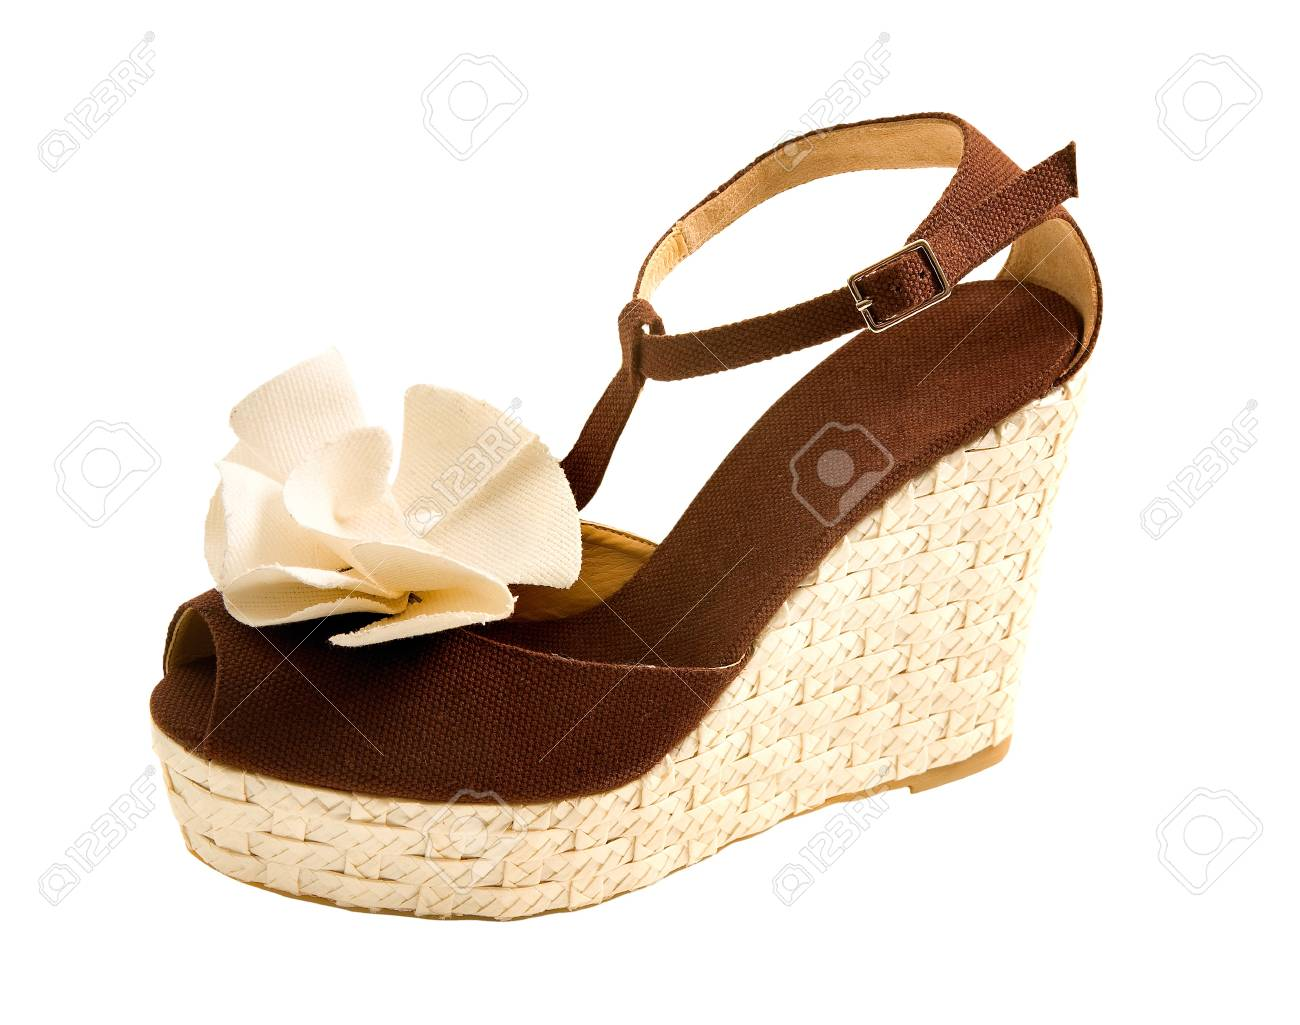 Wedge raffia peep toe sandal with fabric rose isolated on white background. Clipping path included. Stock Photo - 18608379